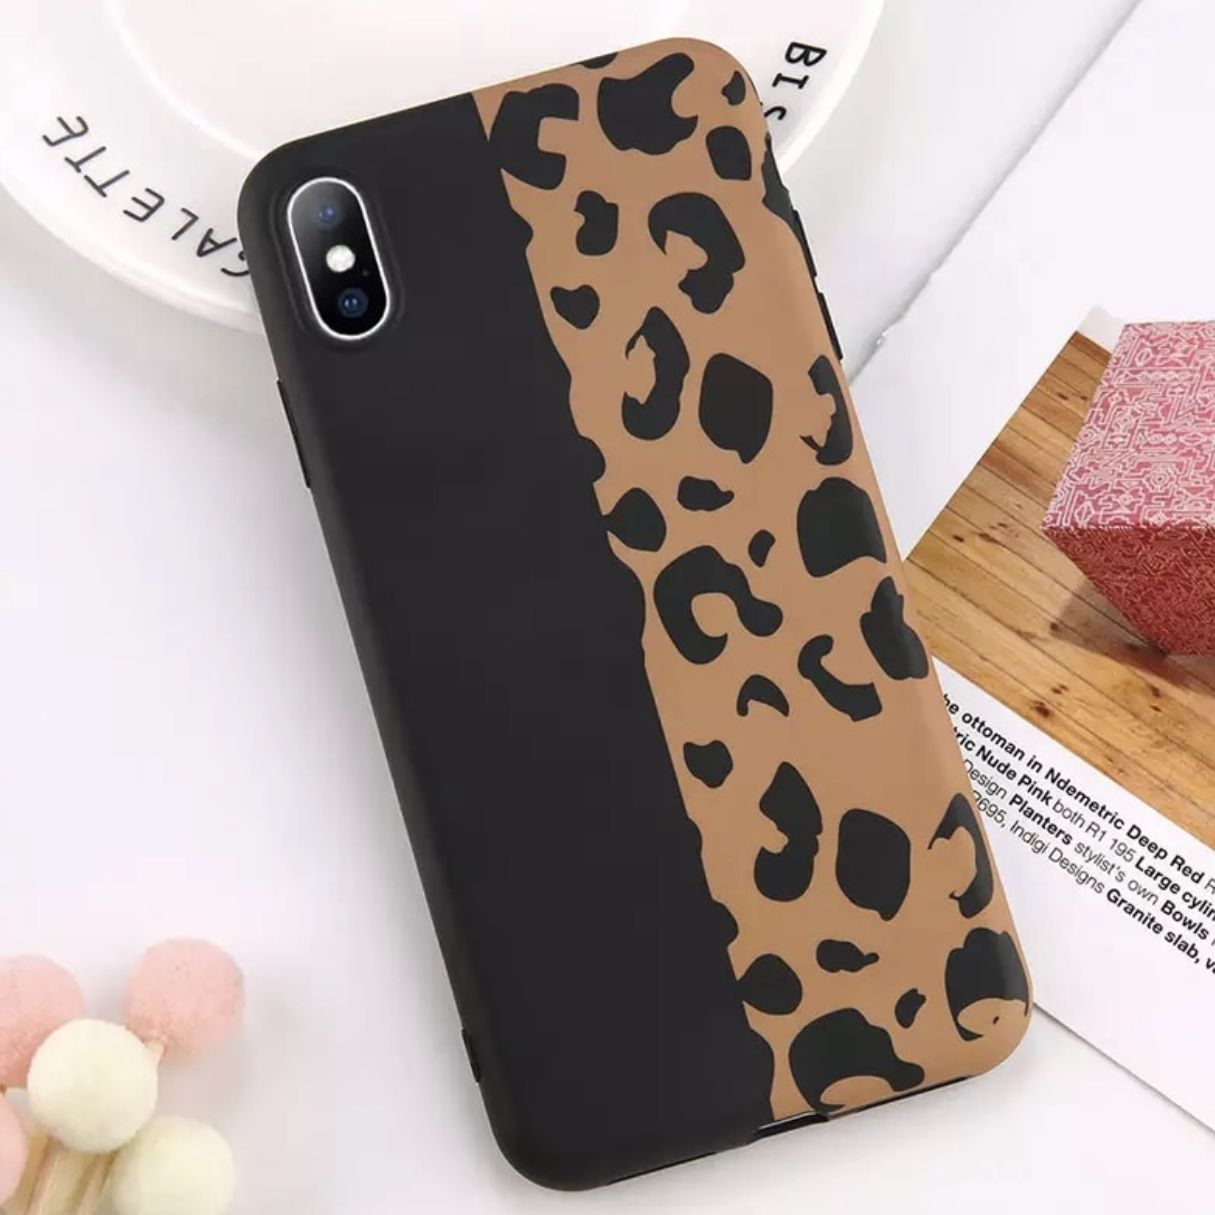 Iphone Xs Case كفر ايفون اكس اس Case Cheetah Print Iphone